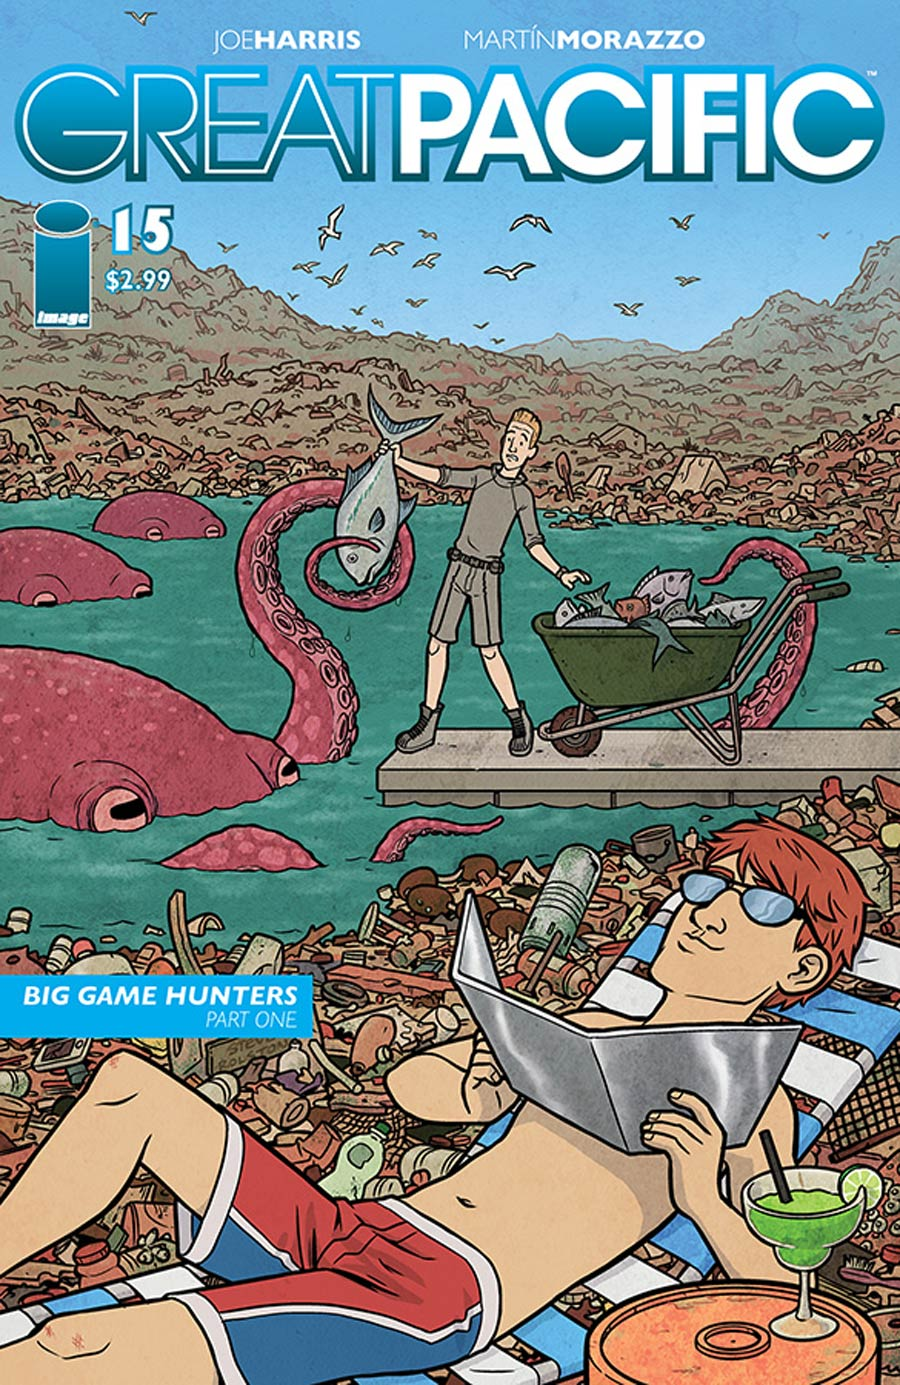 Great Pacific #15 Cover B Steve Rolston